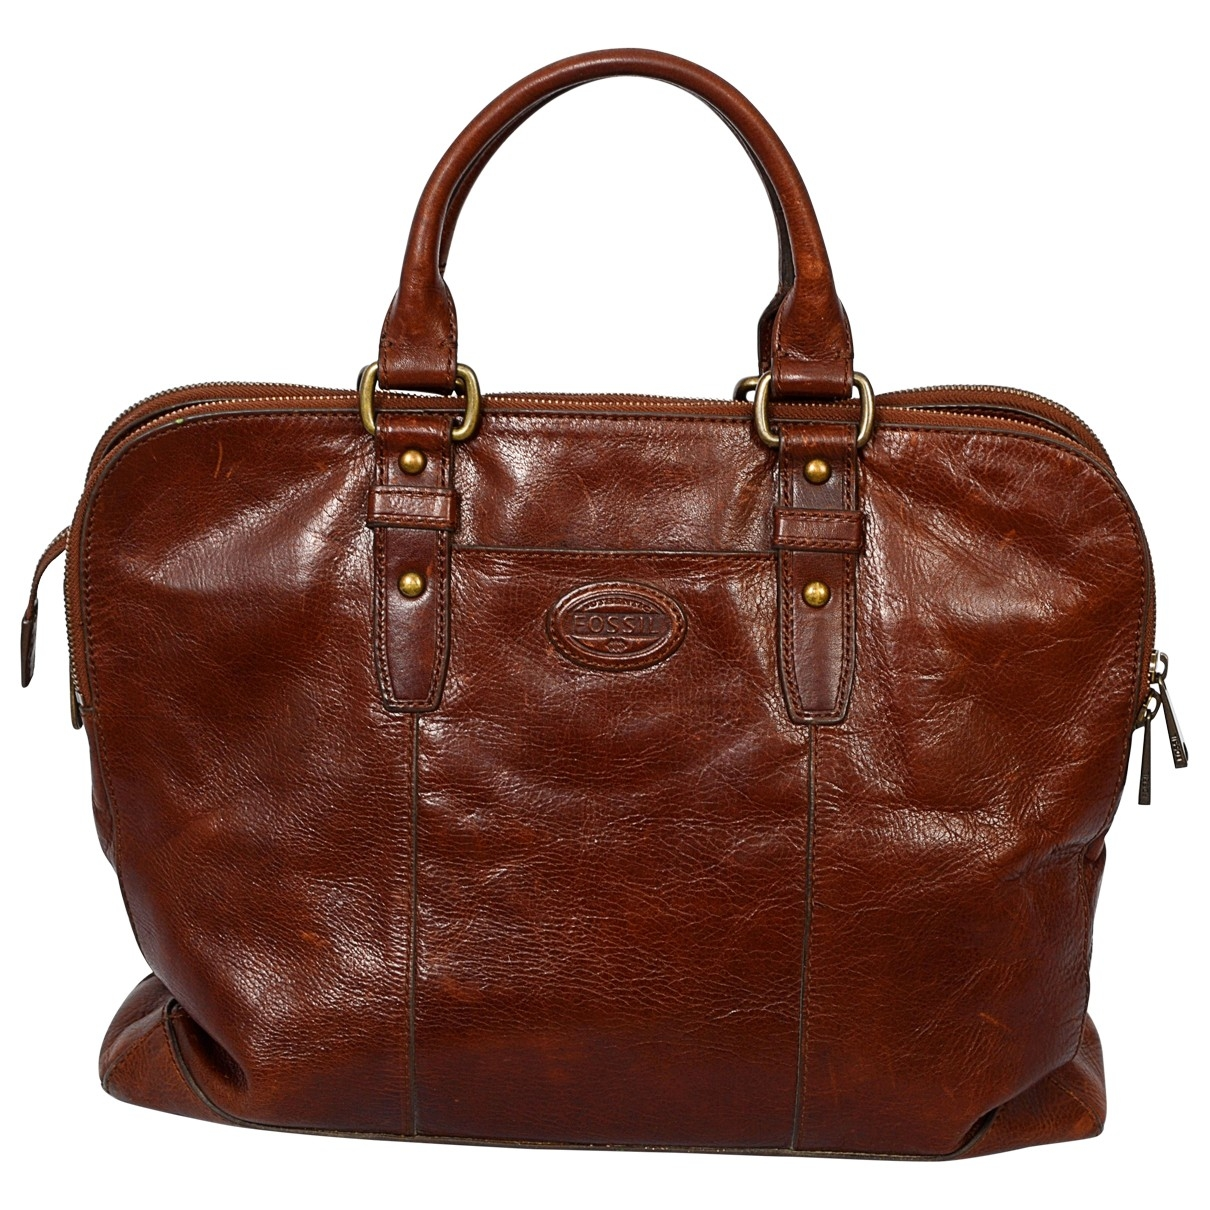 Fossil \N Brown Leather handbag for Women \N